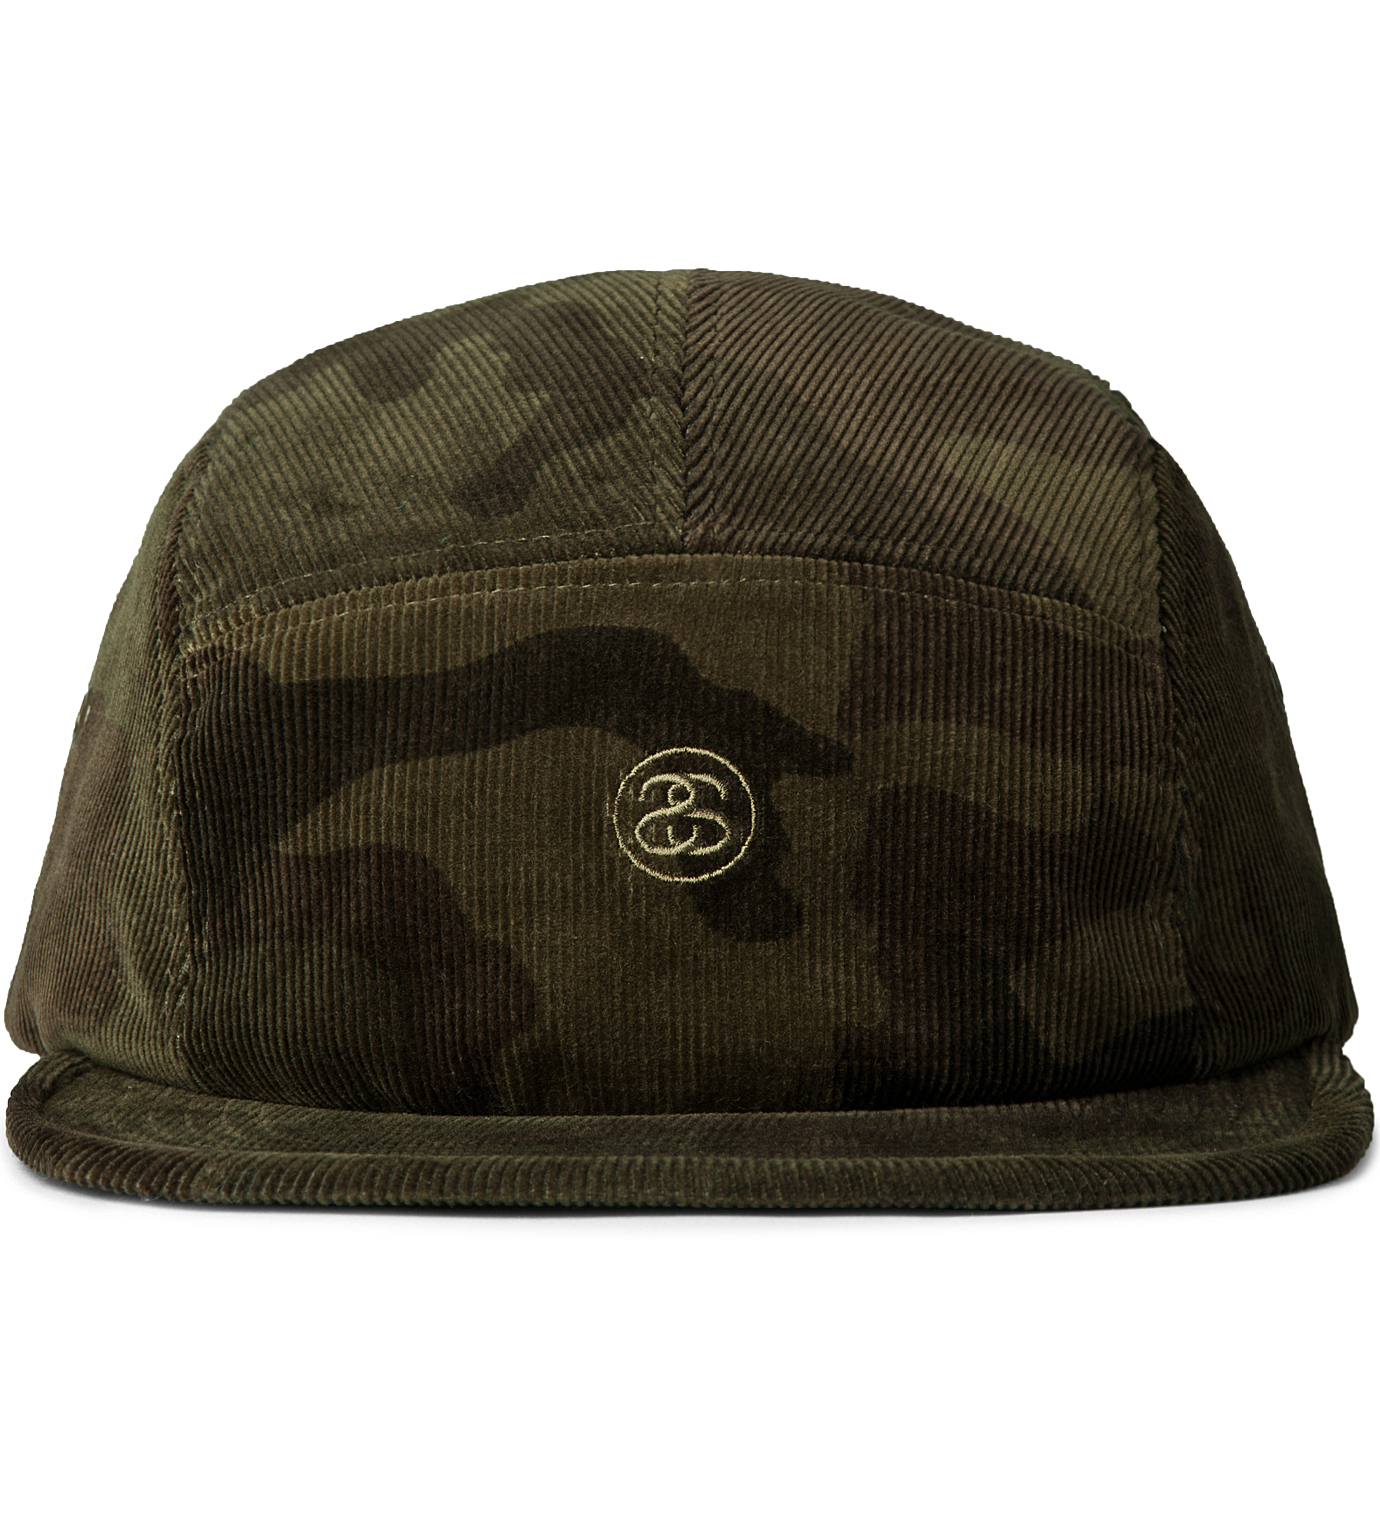 Stussy Deluxe Olive Camo Camp 1980 5 Panel Hat